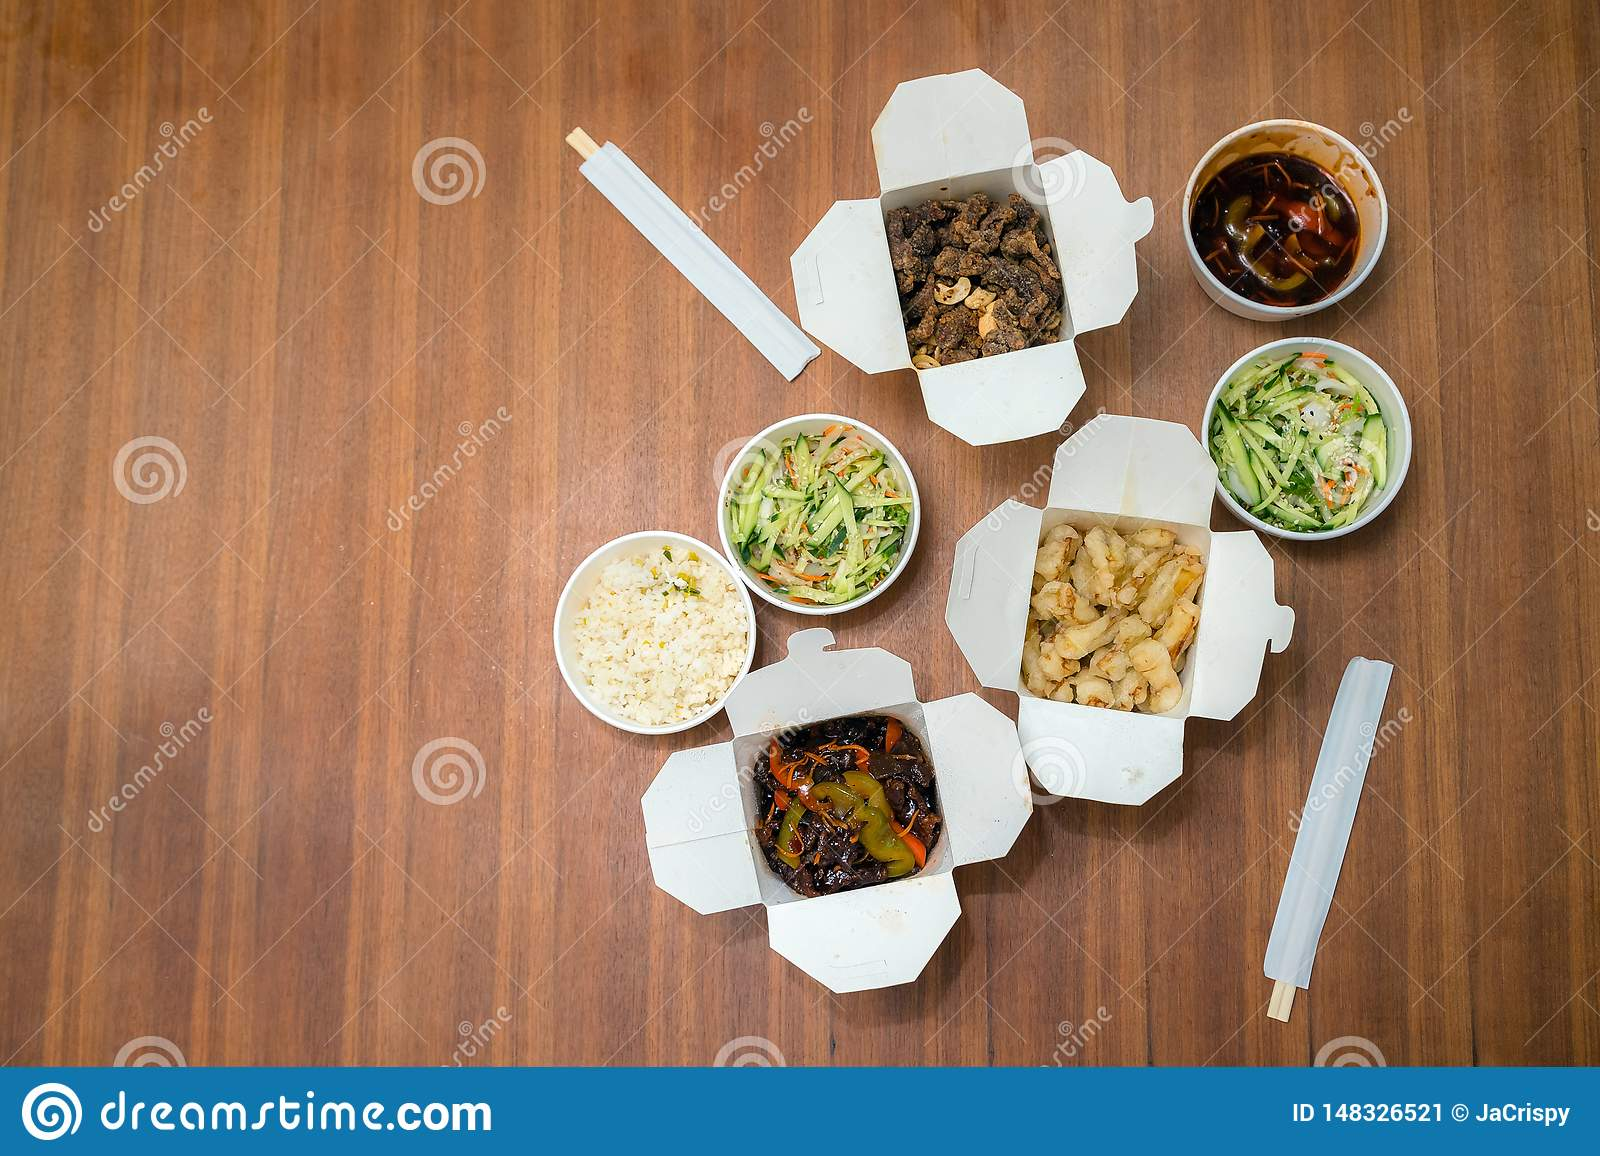 Top View Of Chinese Take Away Food With Chop Sticks On